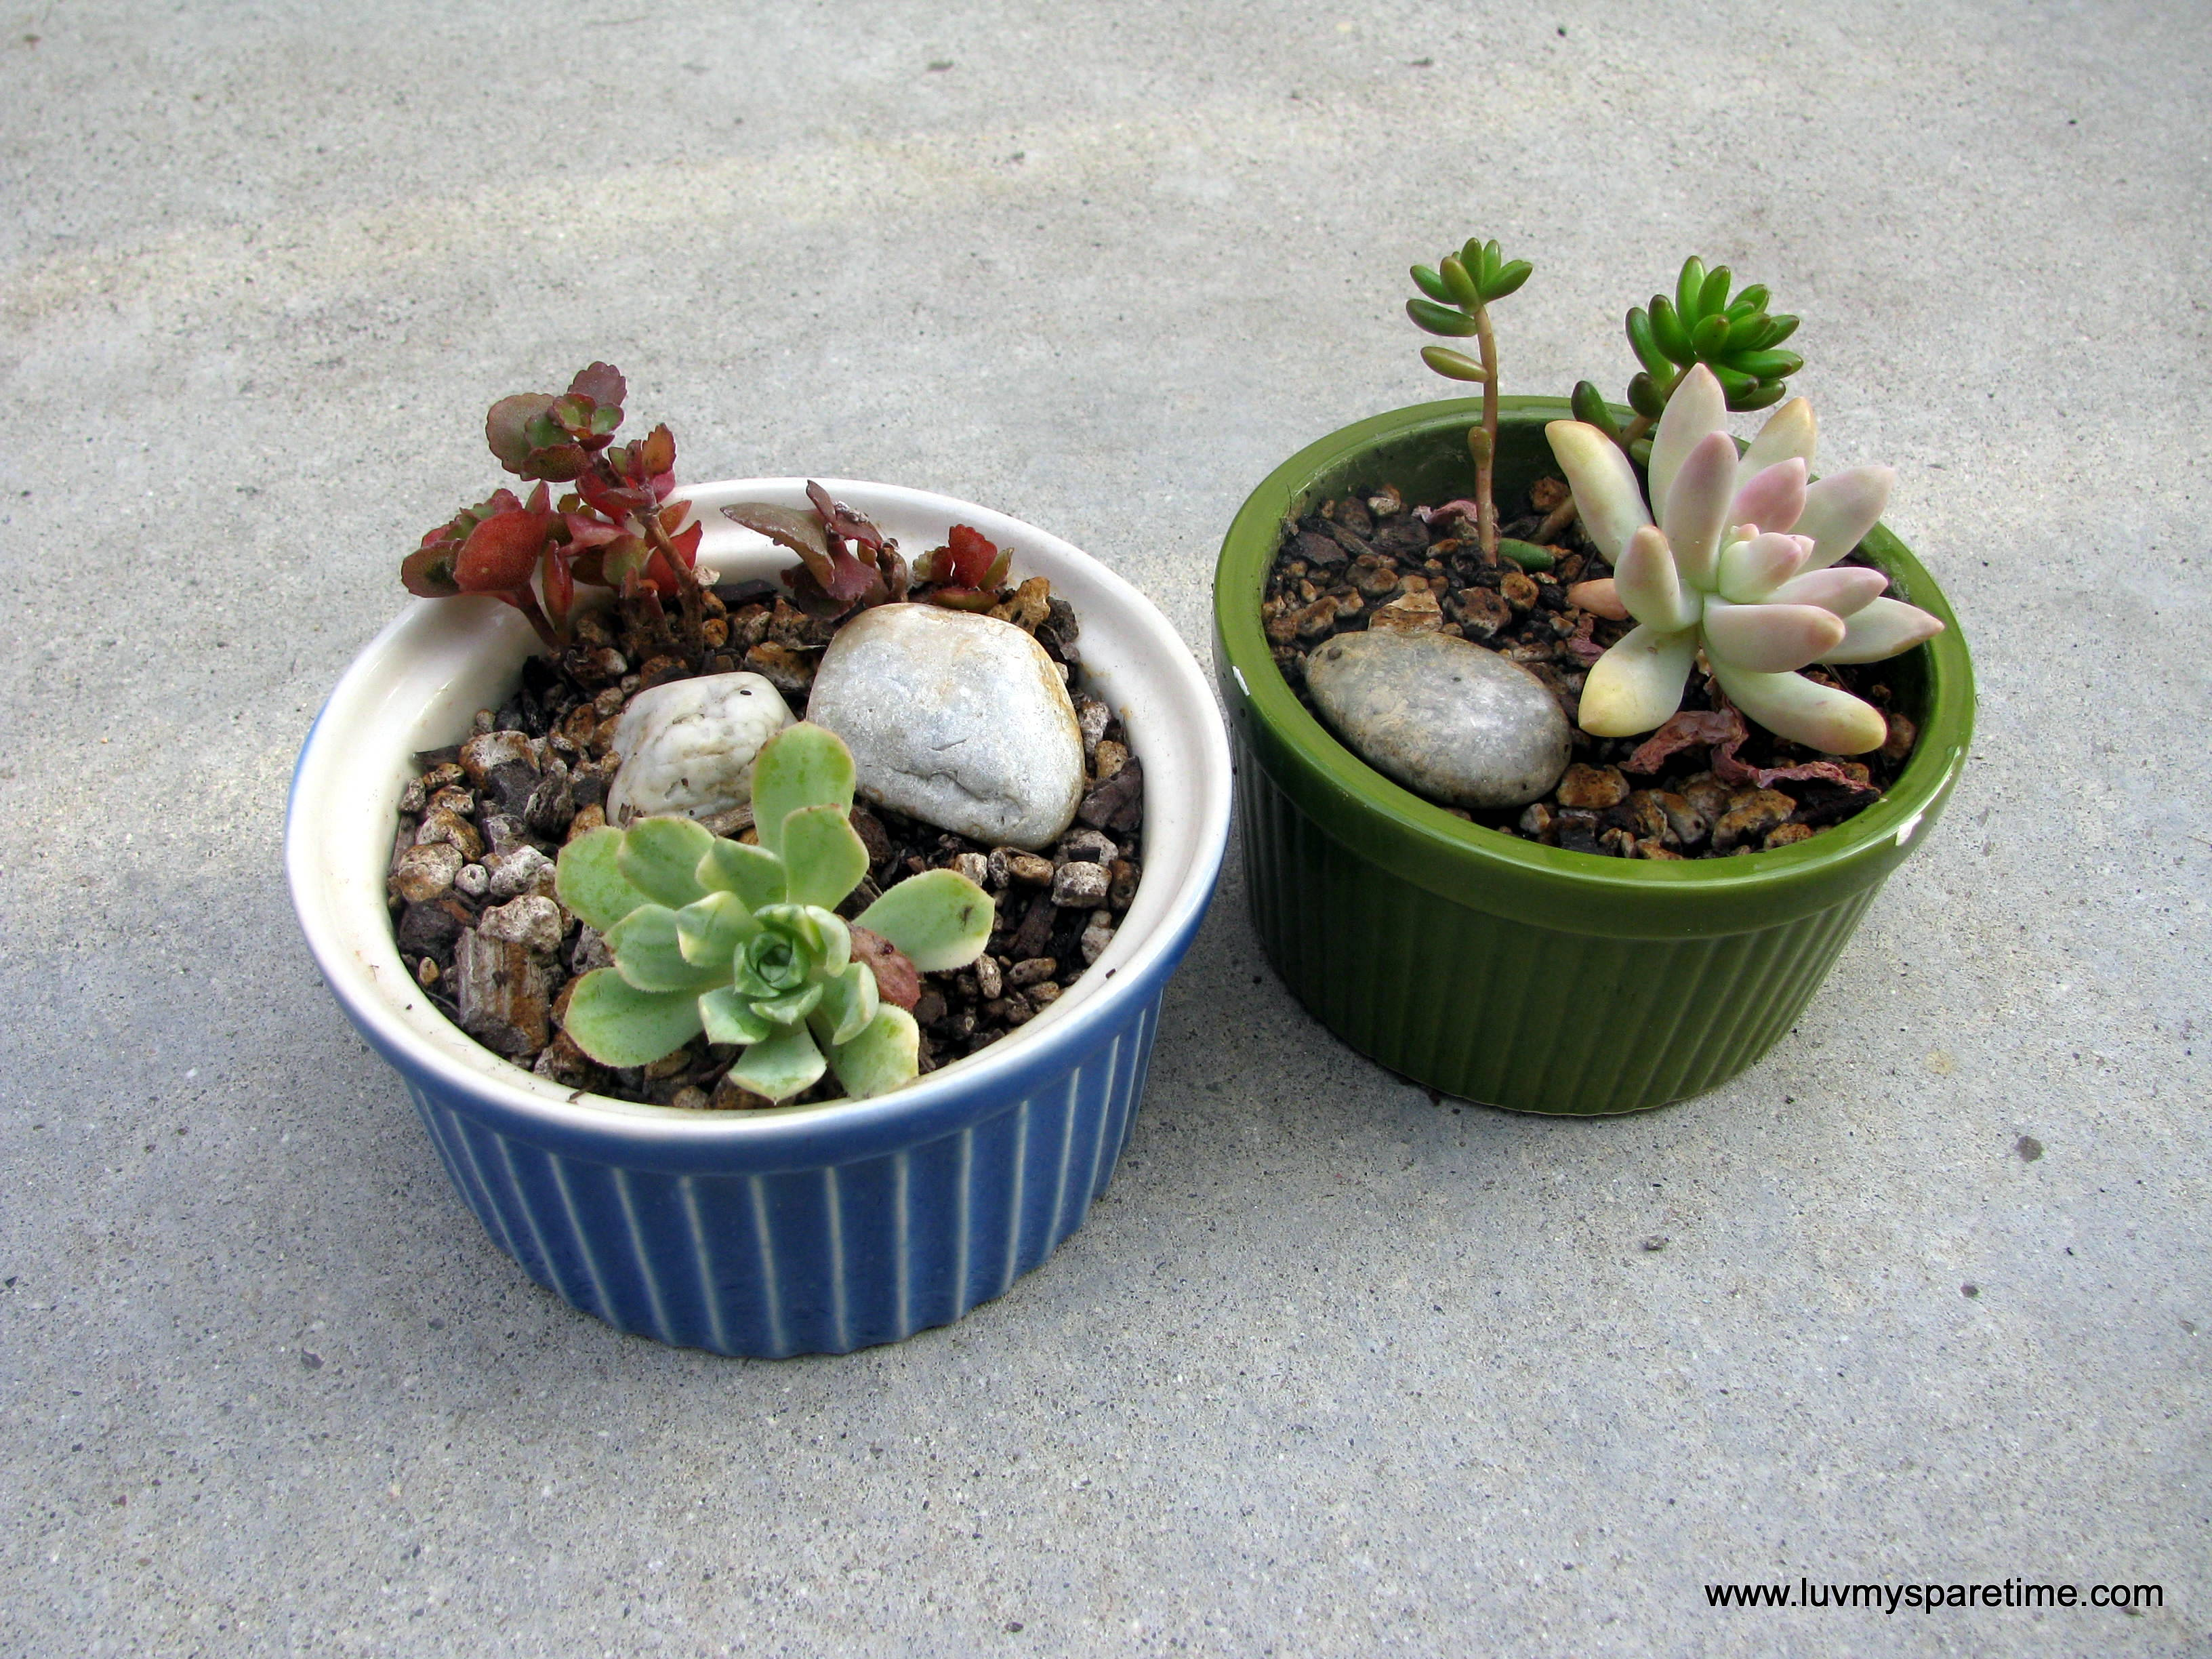 Diy mini succulent garden creations luv my spare time diy mini succulent garden pots workwithnaturefo